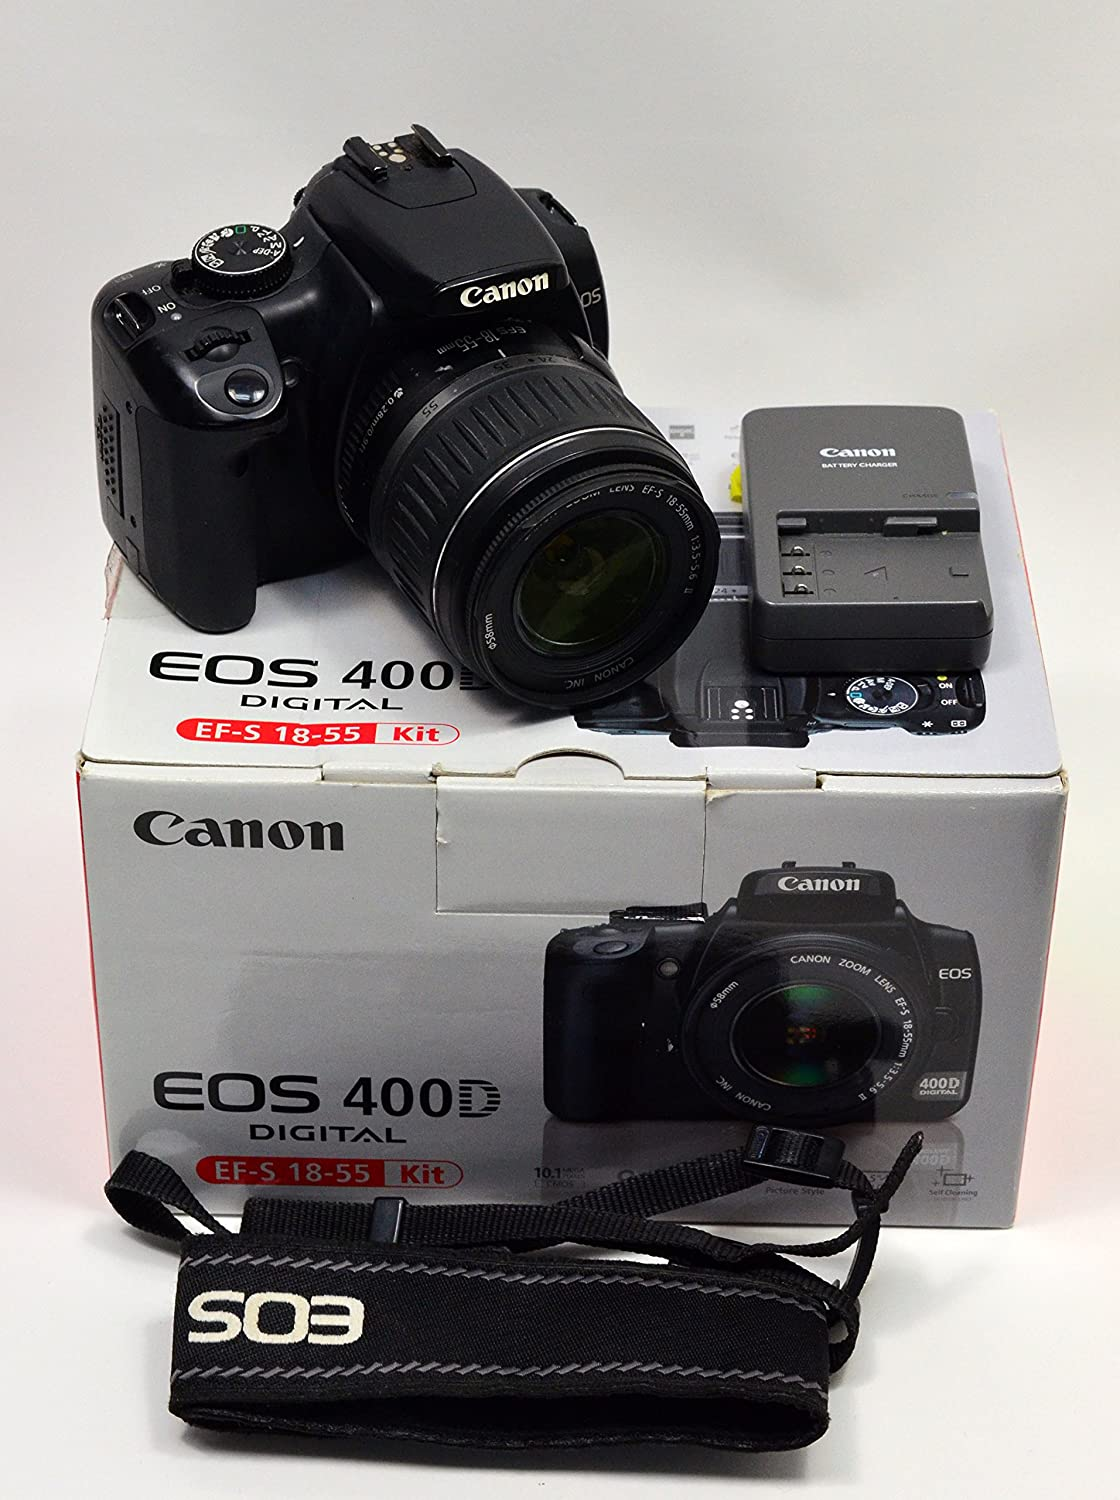 Canon Eos Kiss X Rebel Xti Eos 400d 10 Mp Cmos Aps C Digital Slr Camera With 2 5 Inch Lcd Ef S 18 55mm F 3 5 5 6 Lens